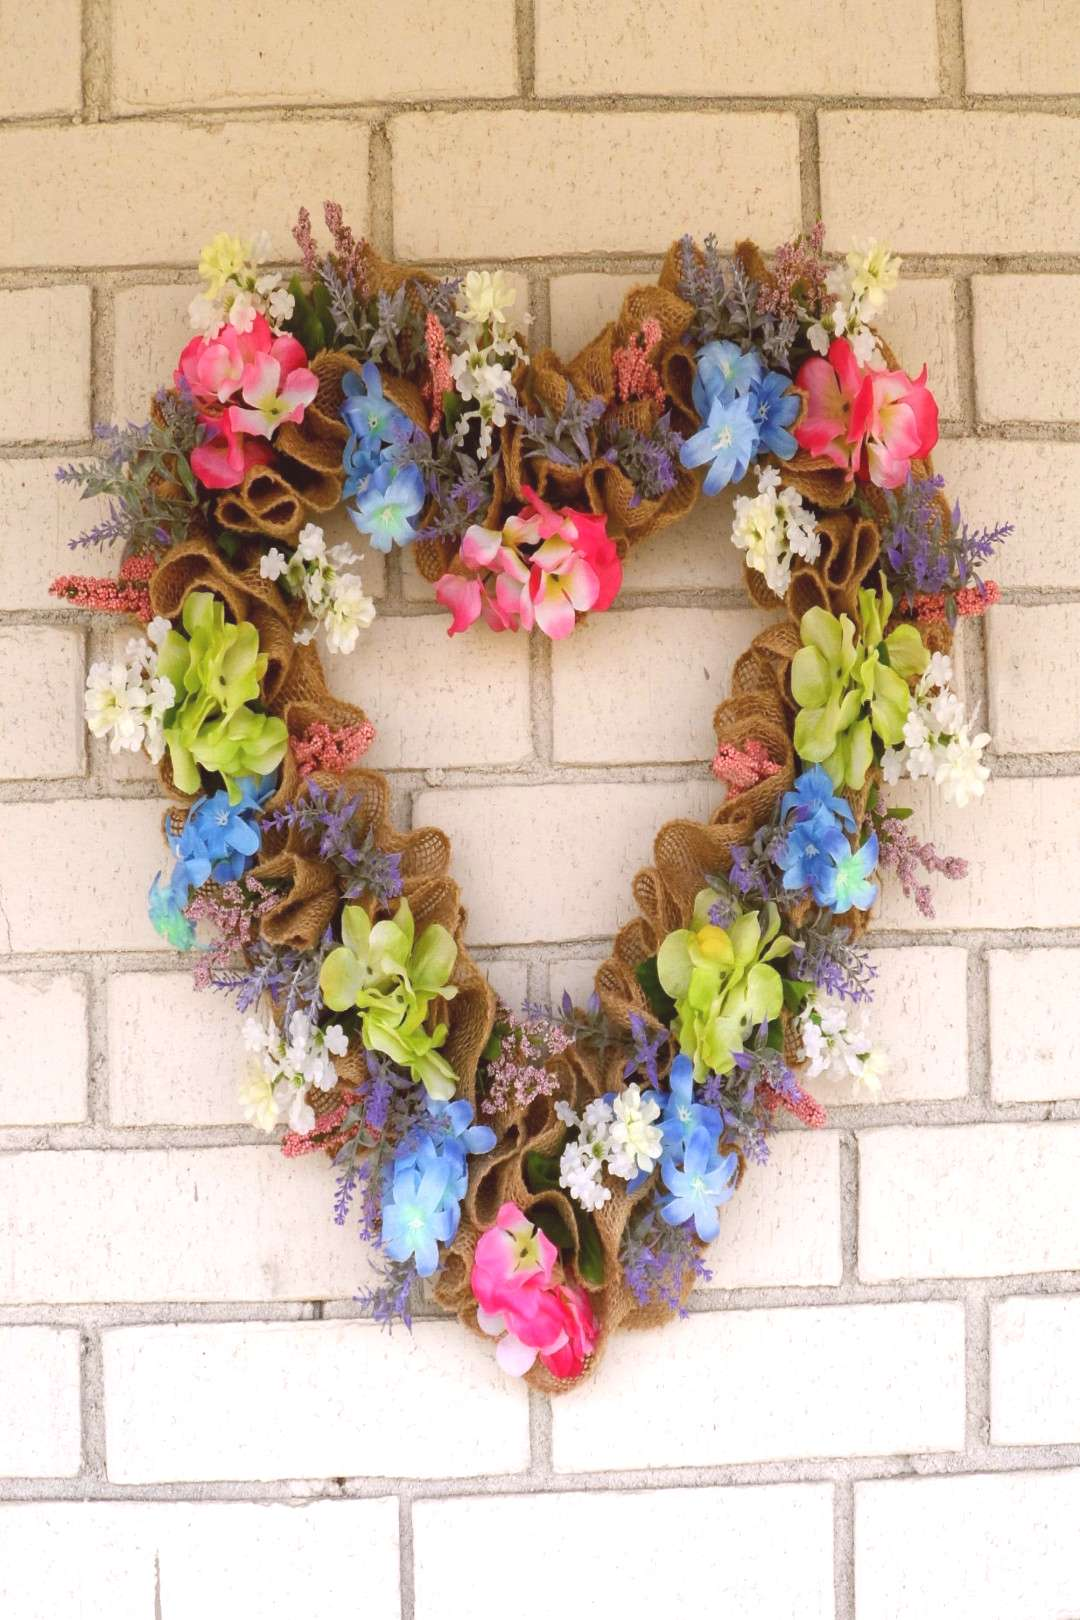 Heart Shaped Spring Floral Wreath for Front Door, Burlap Wreath for Spring, Floral Spring Wre... He